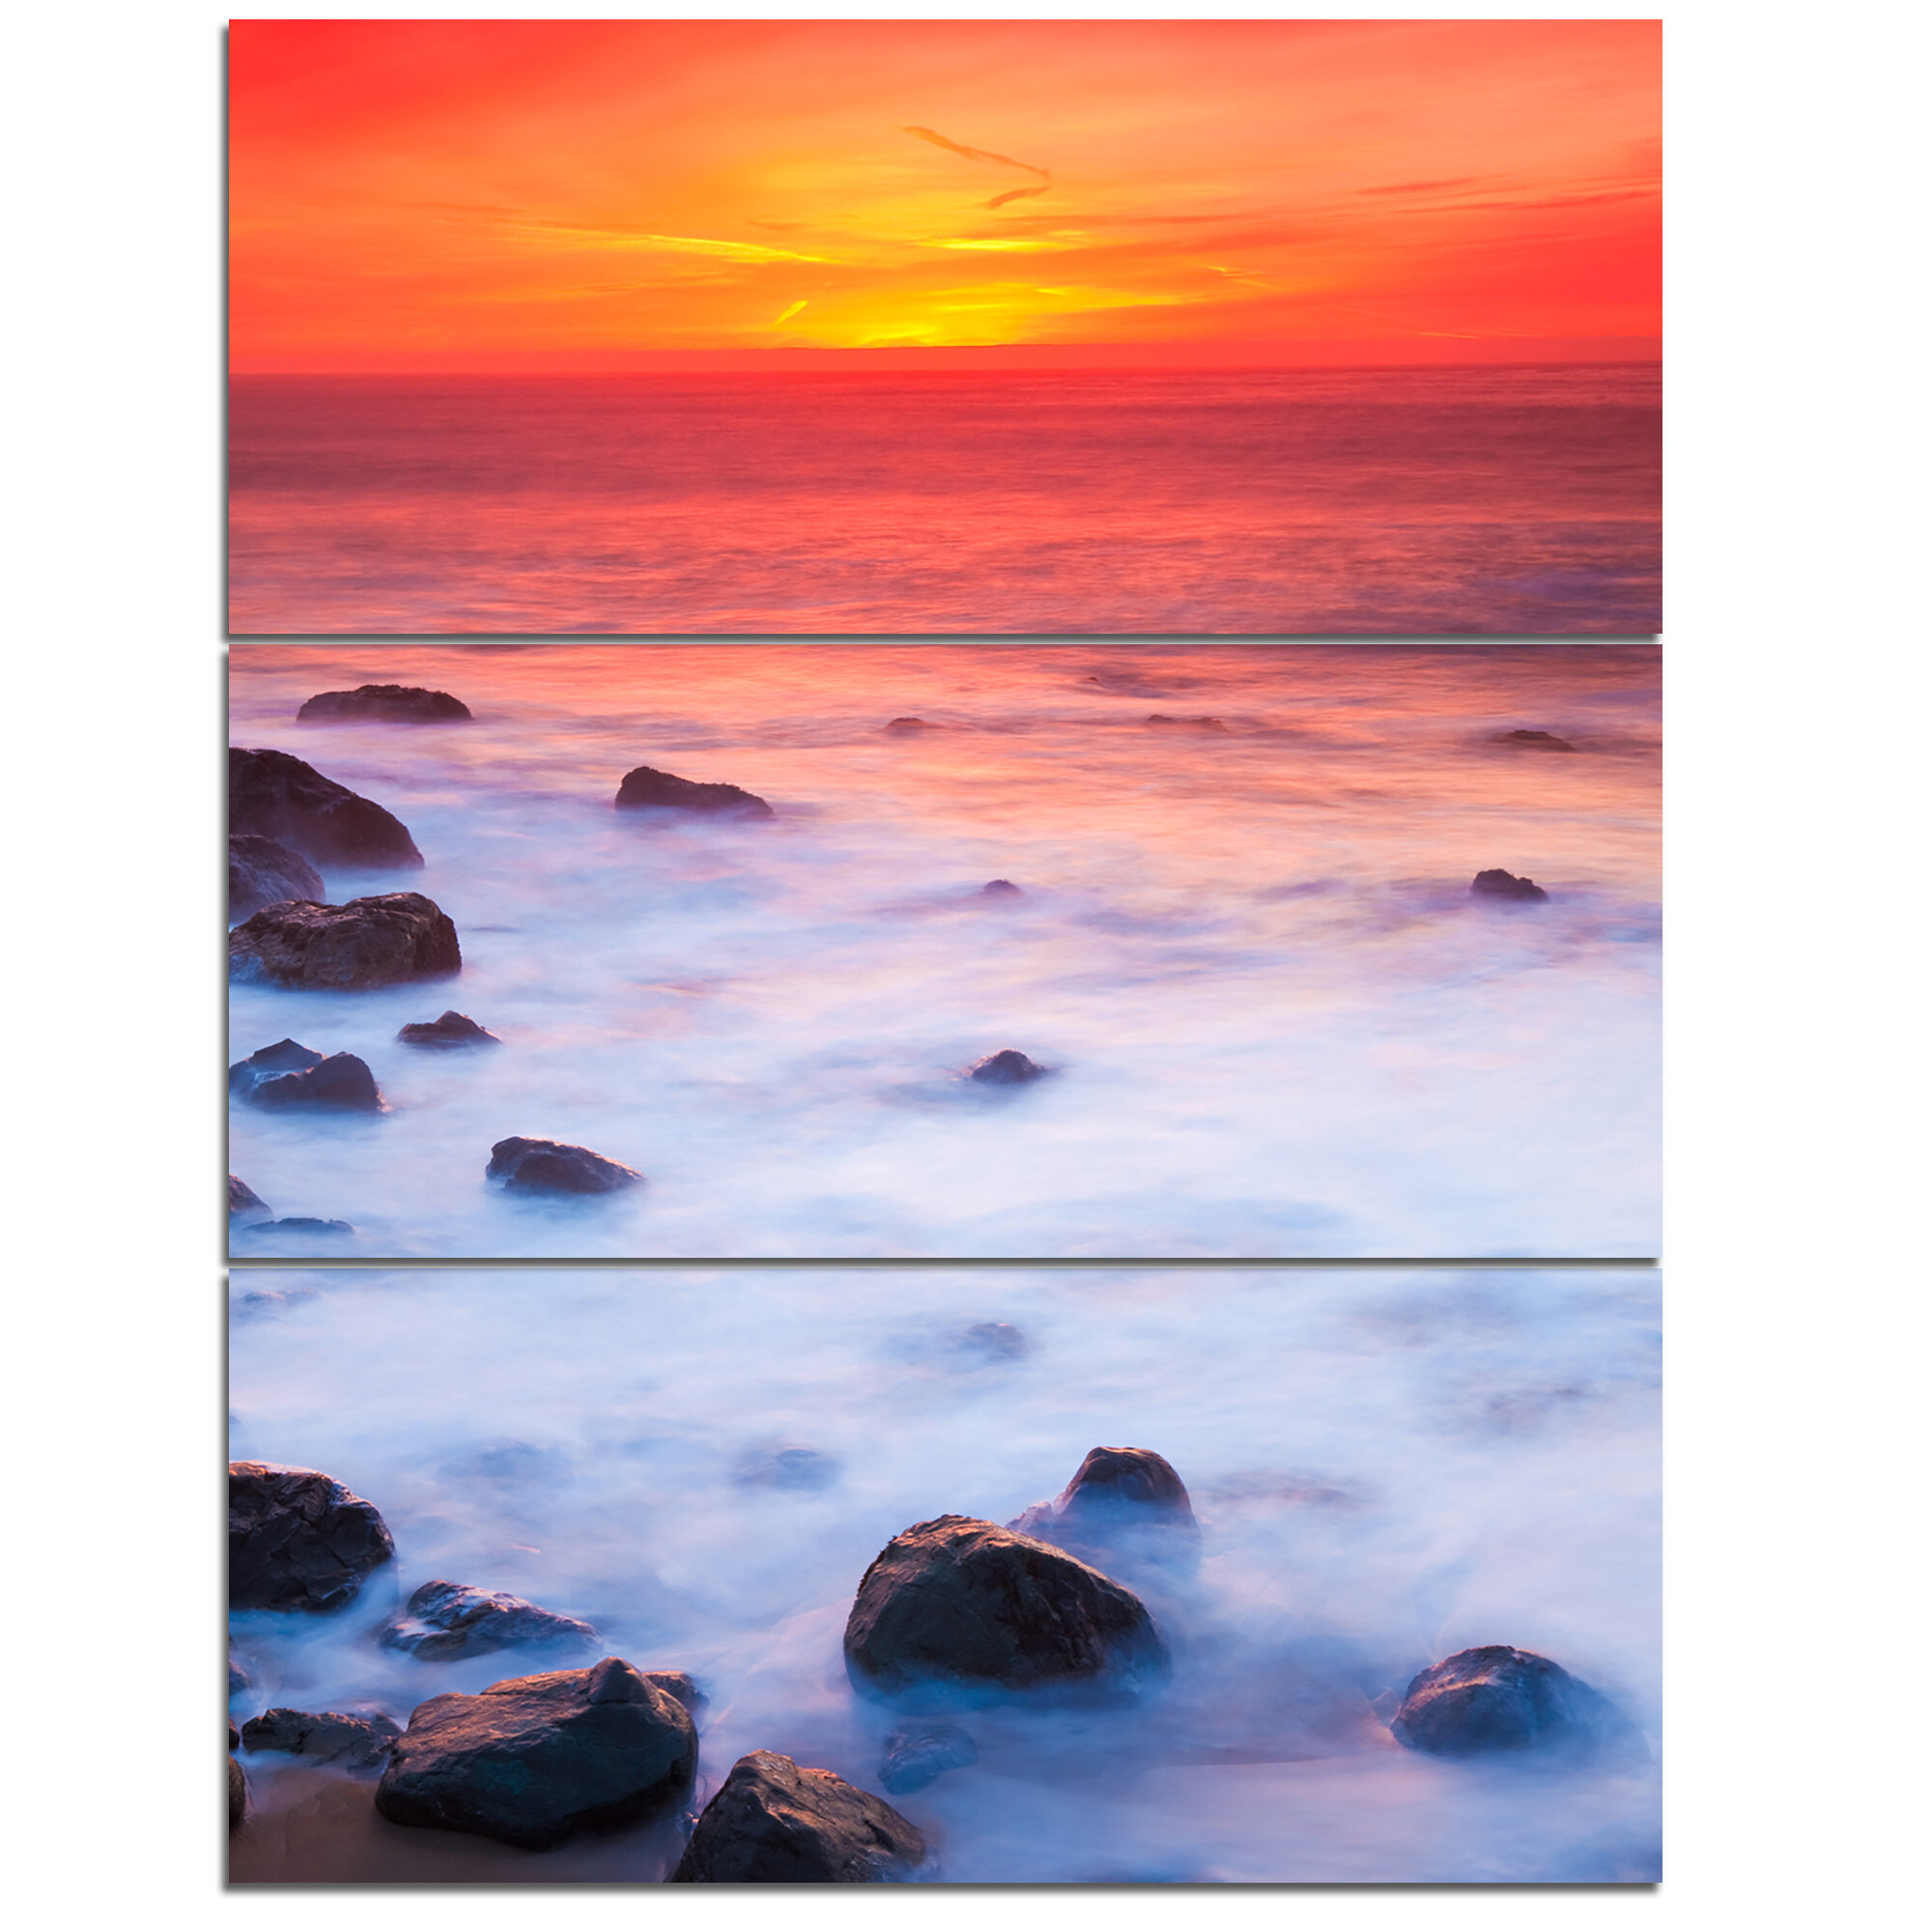 Designart Bright Red Rocky Coast Sunset 3 Piece Graphic Art On Wrapped Canvas Set Wayfair